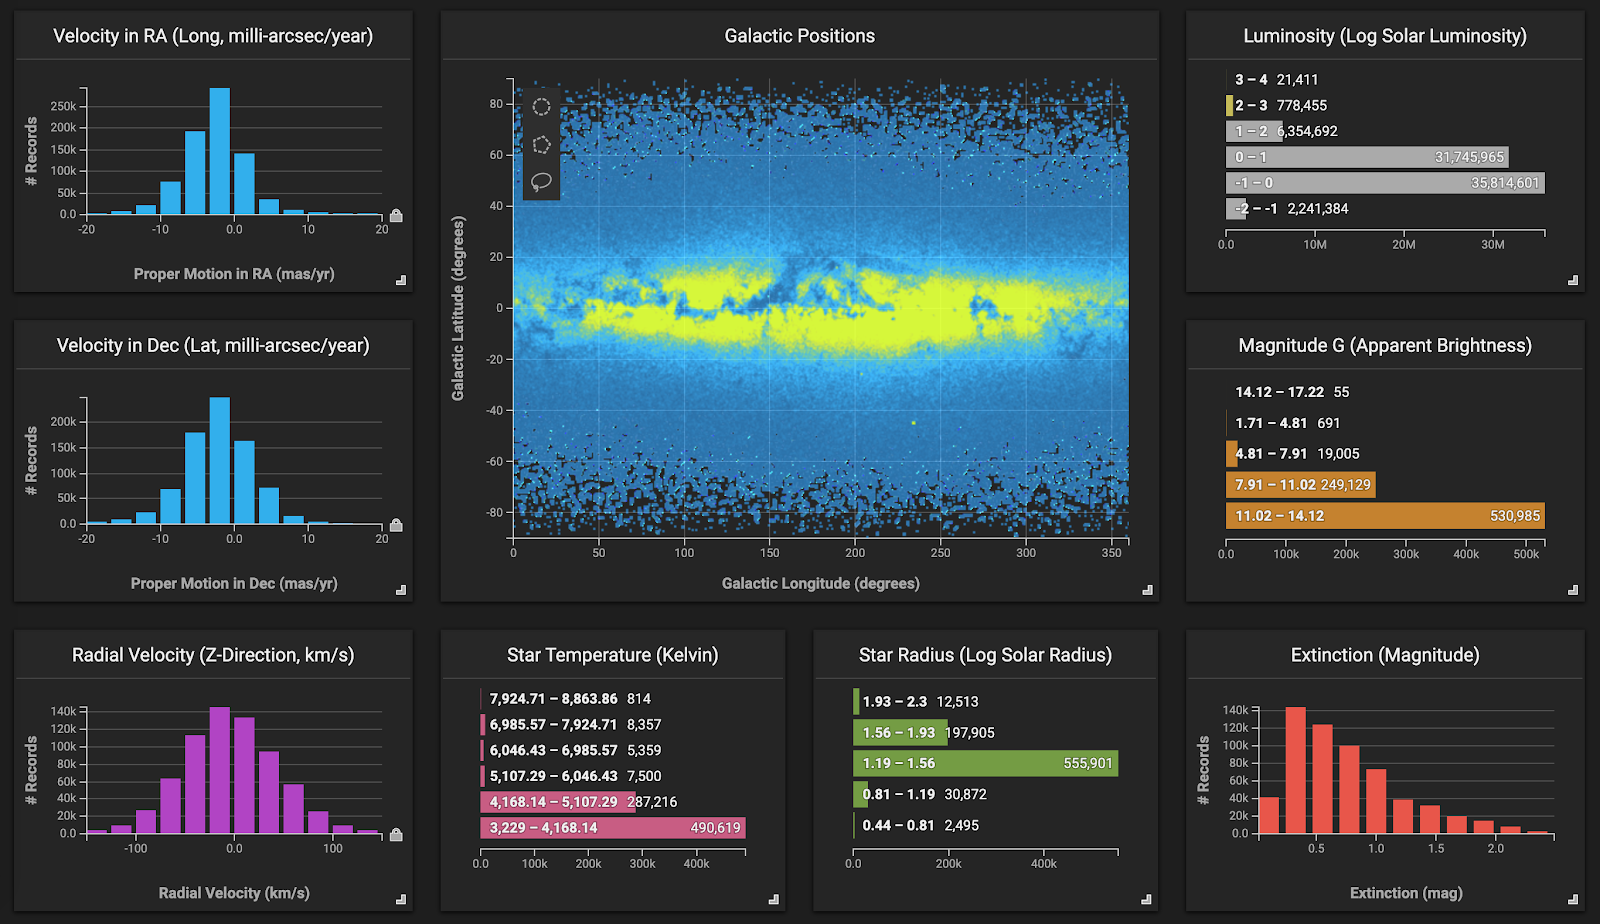 Image shows OmniSci's data exploration platform performing visualizations of galactic positions.